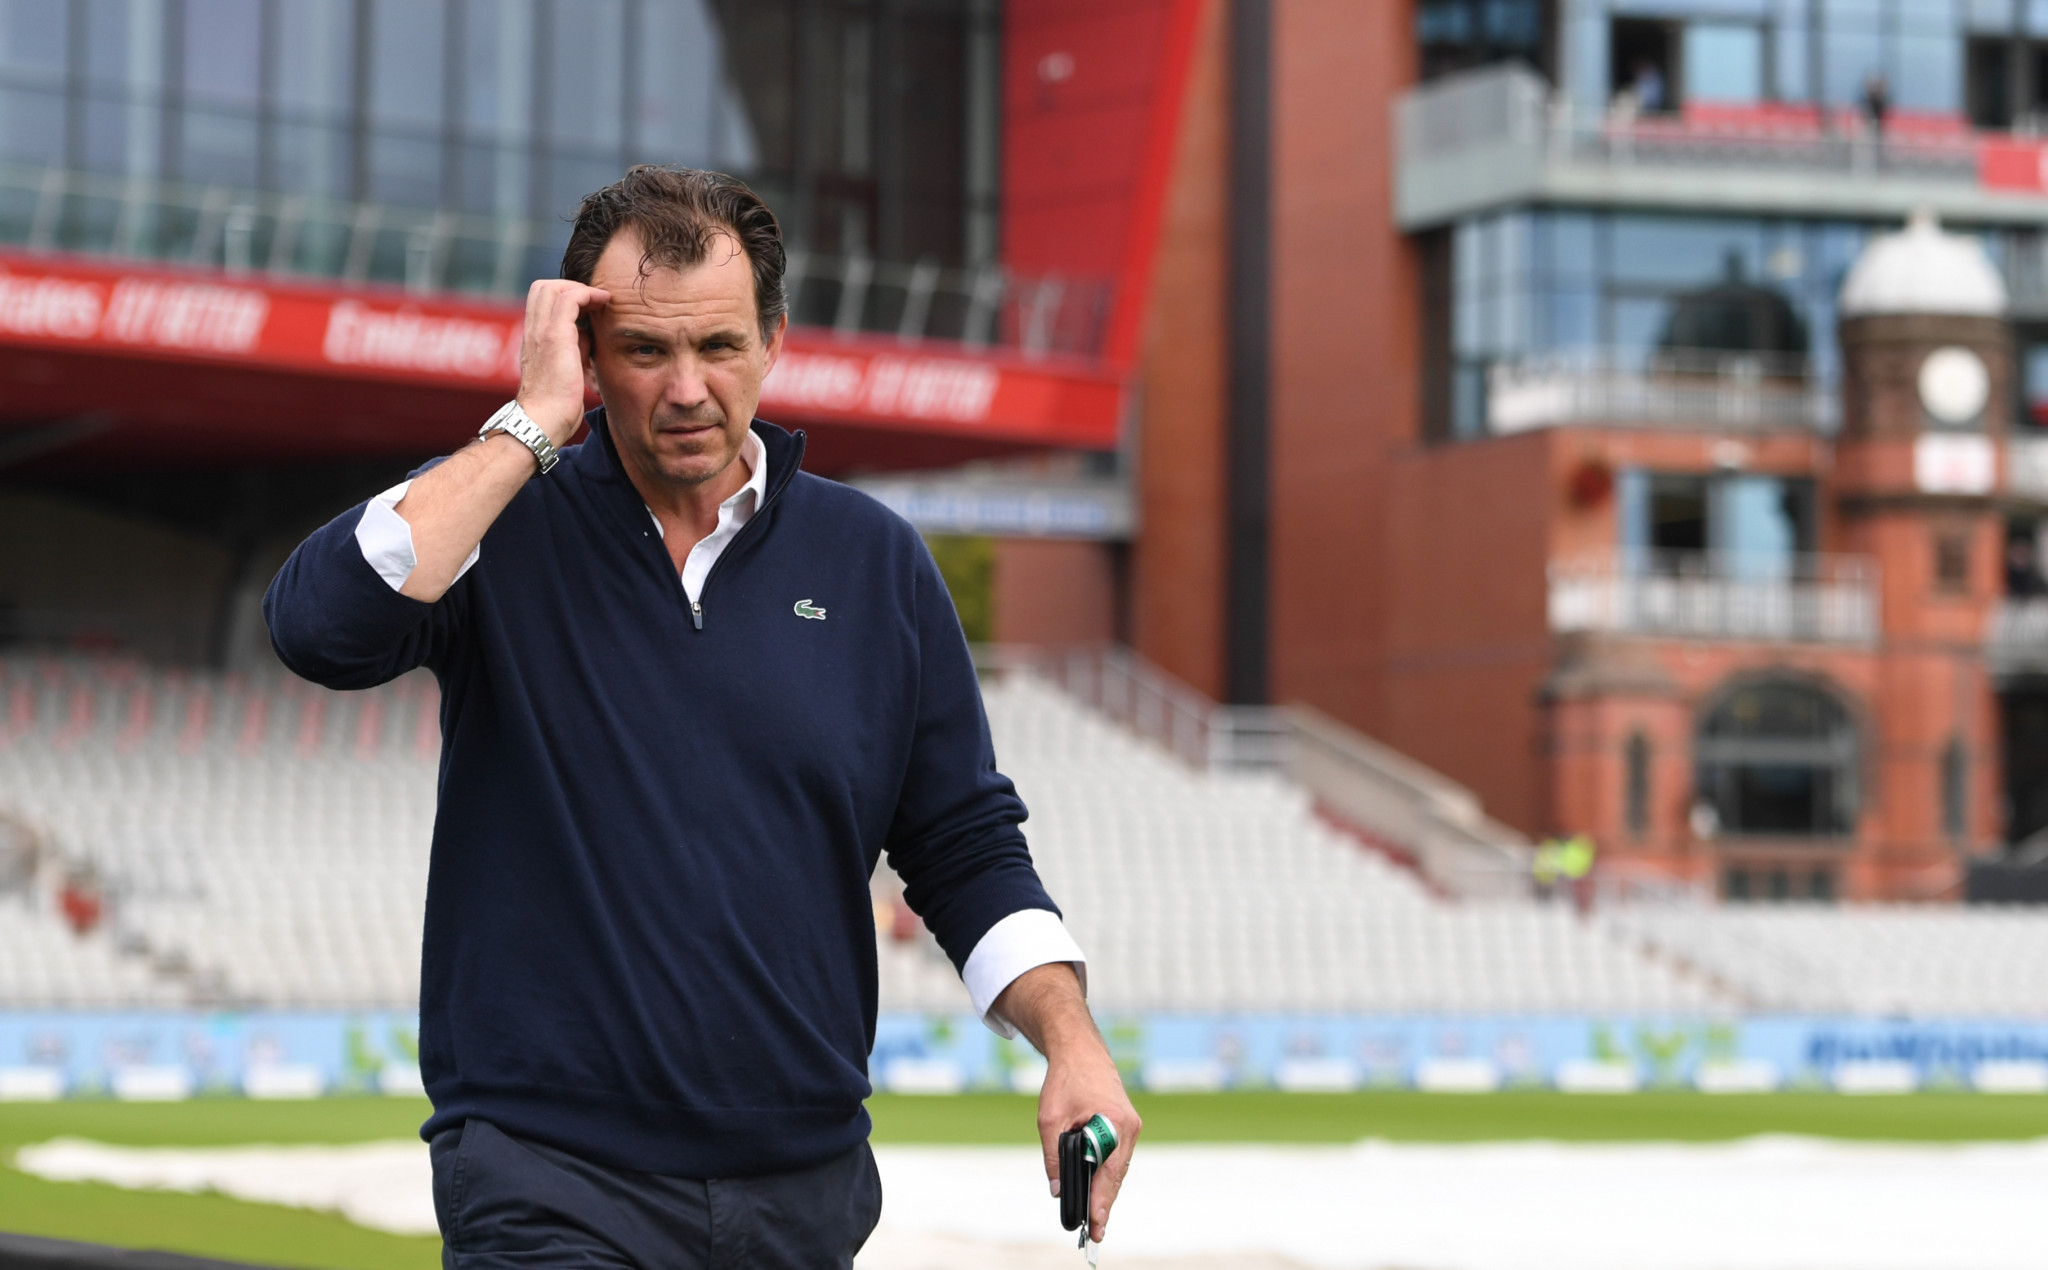 ECB chief executive Tom Harrison suggests postponed India Test could take place next summer